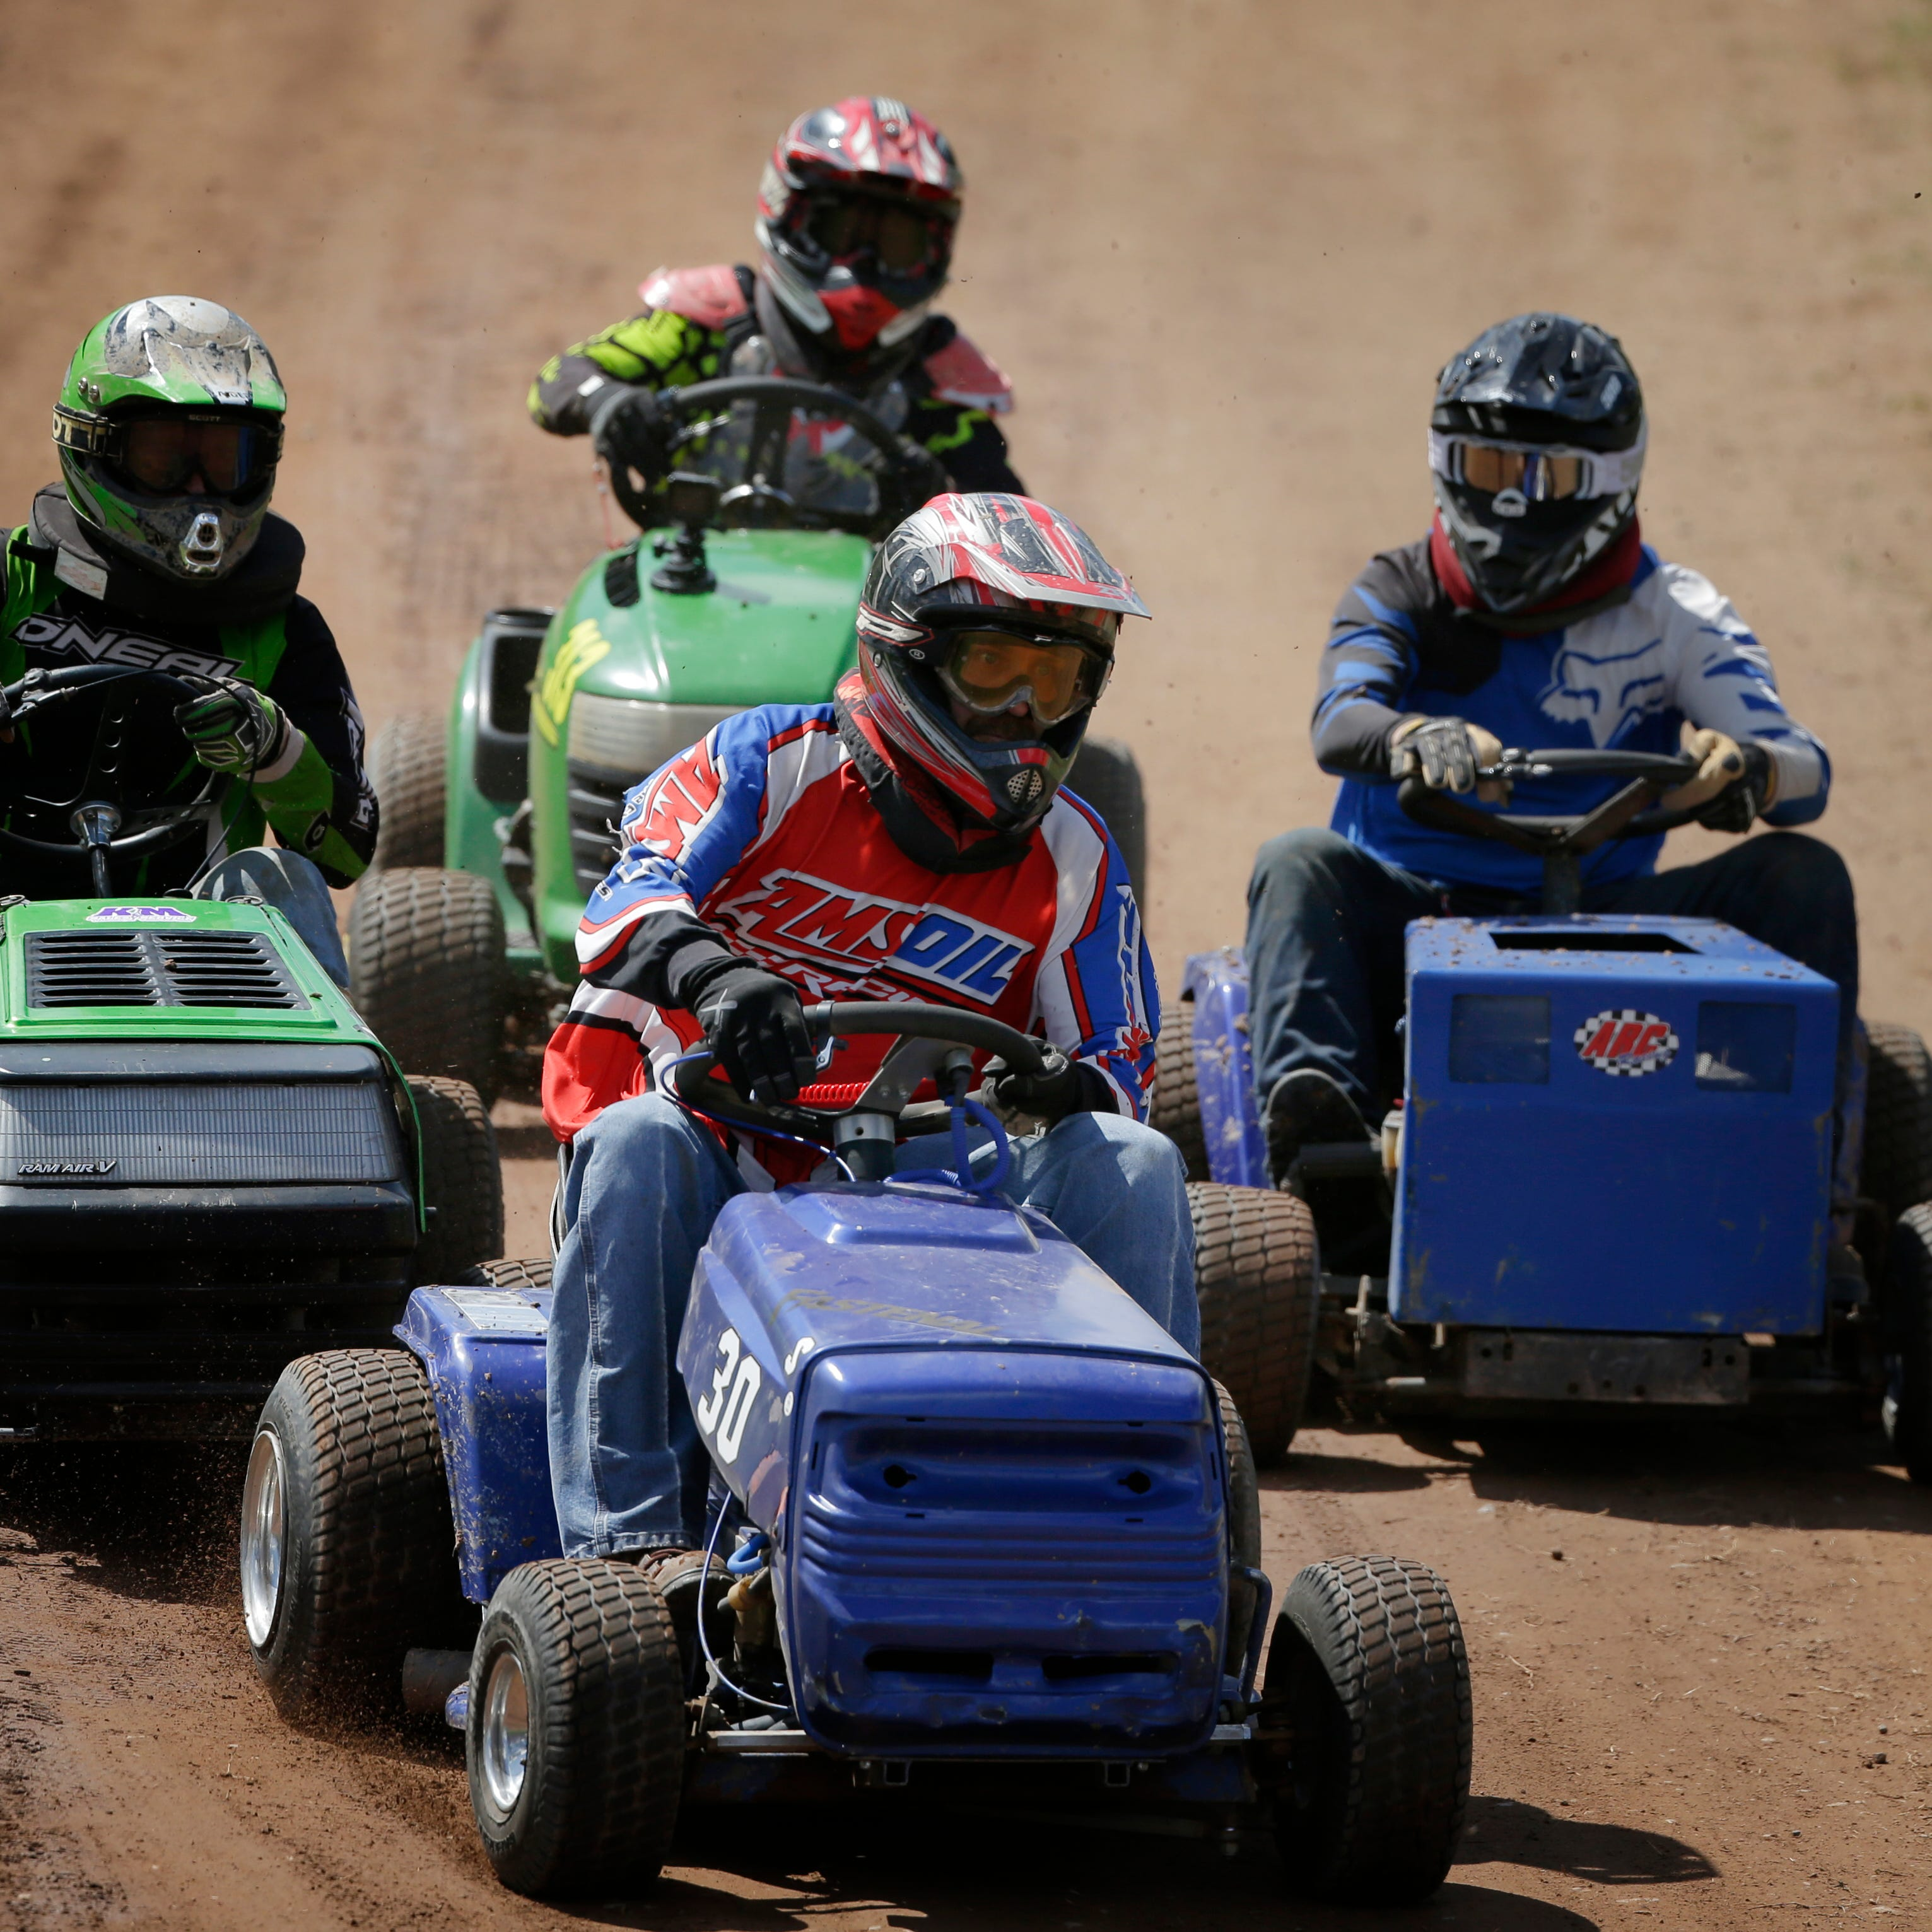 Built for speed (and cutting grass), lawn mower racers compete on dirt tracks for trophies, bragging rights